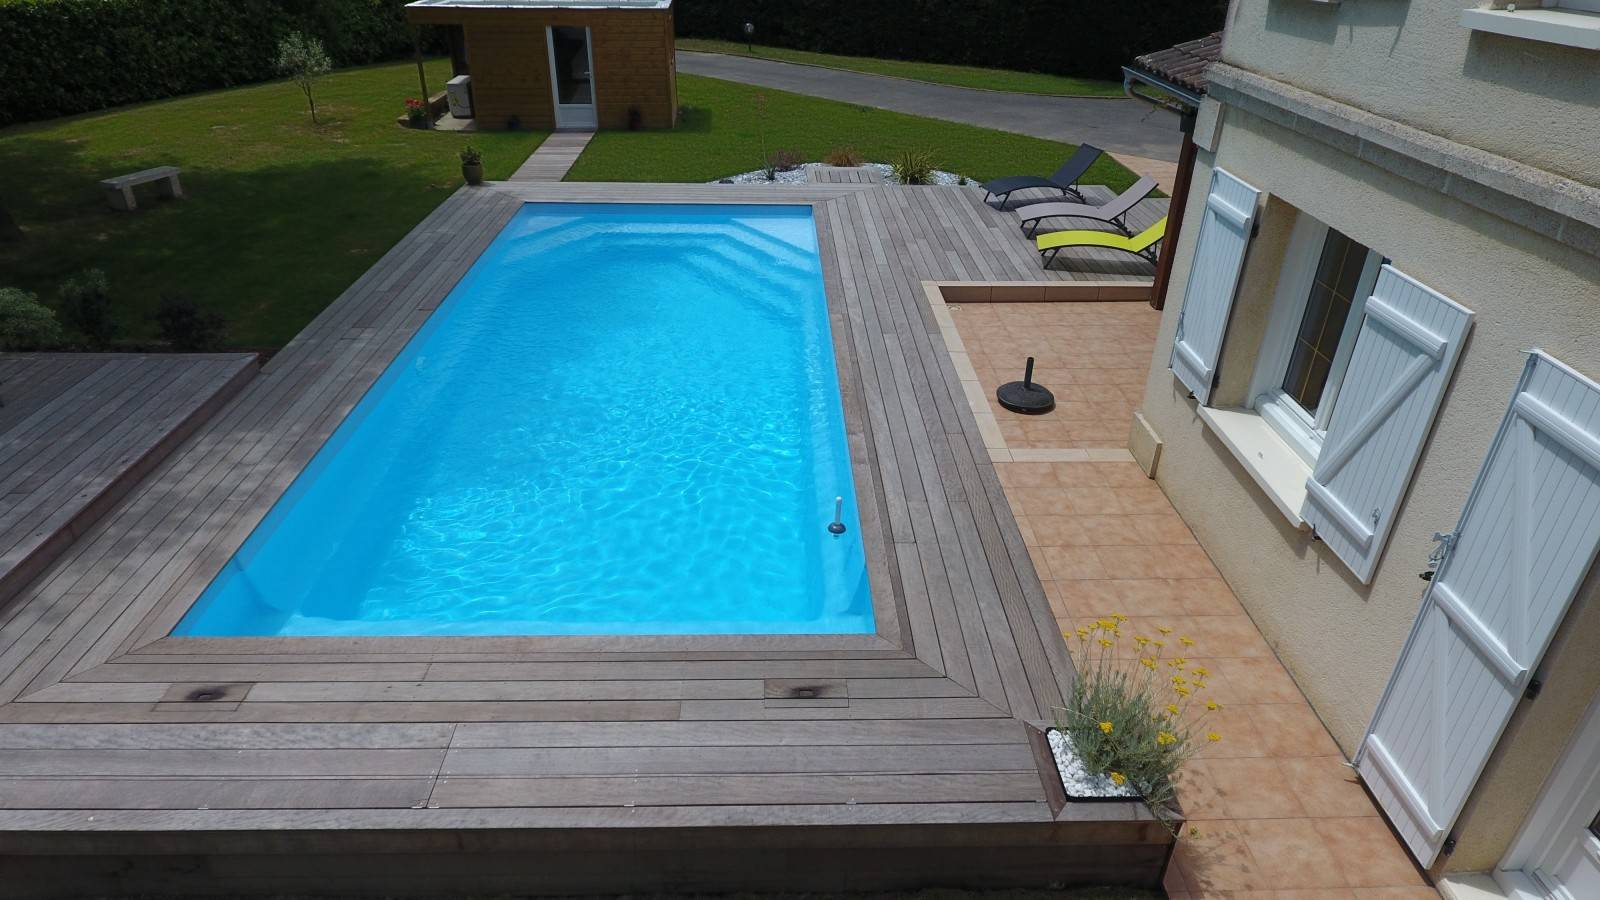 Piscine rectangulaire alliance piscines celestine 10 for Piscine celestine 7